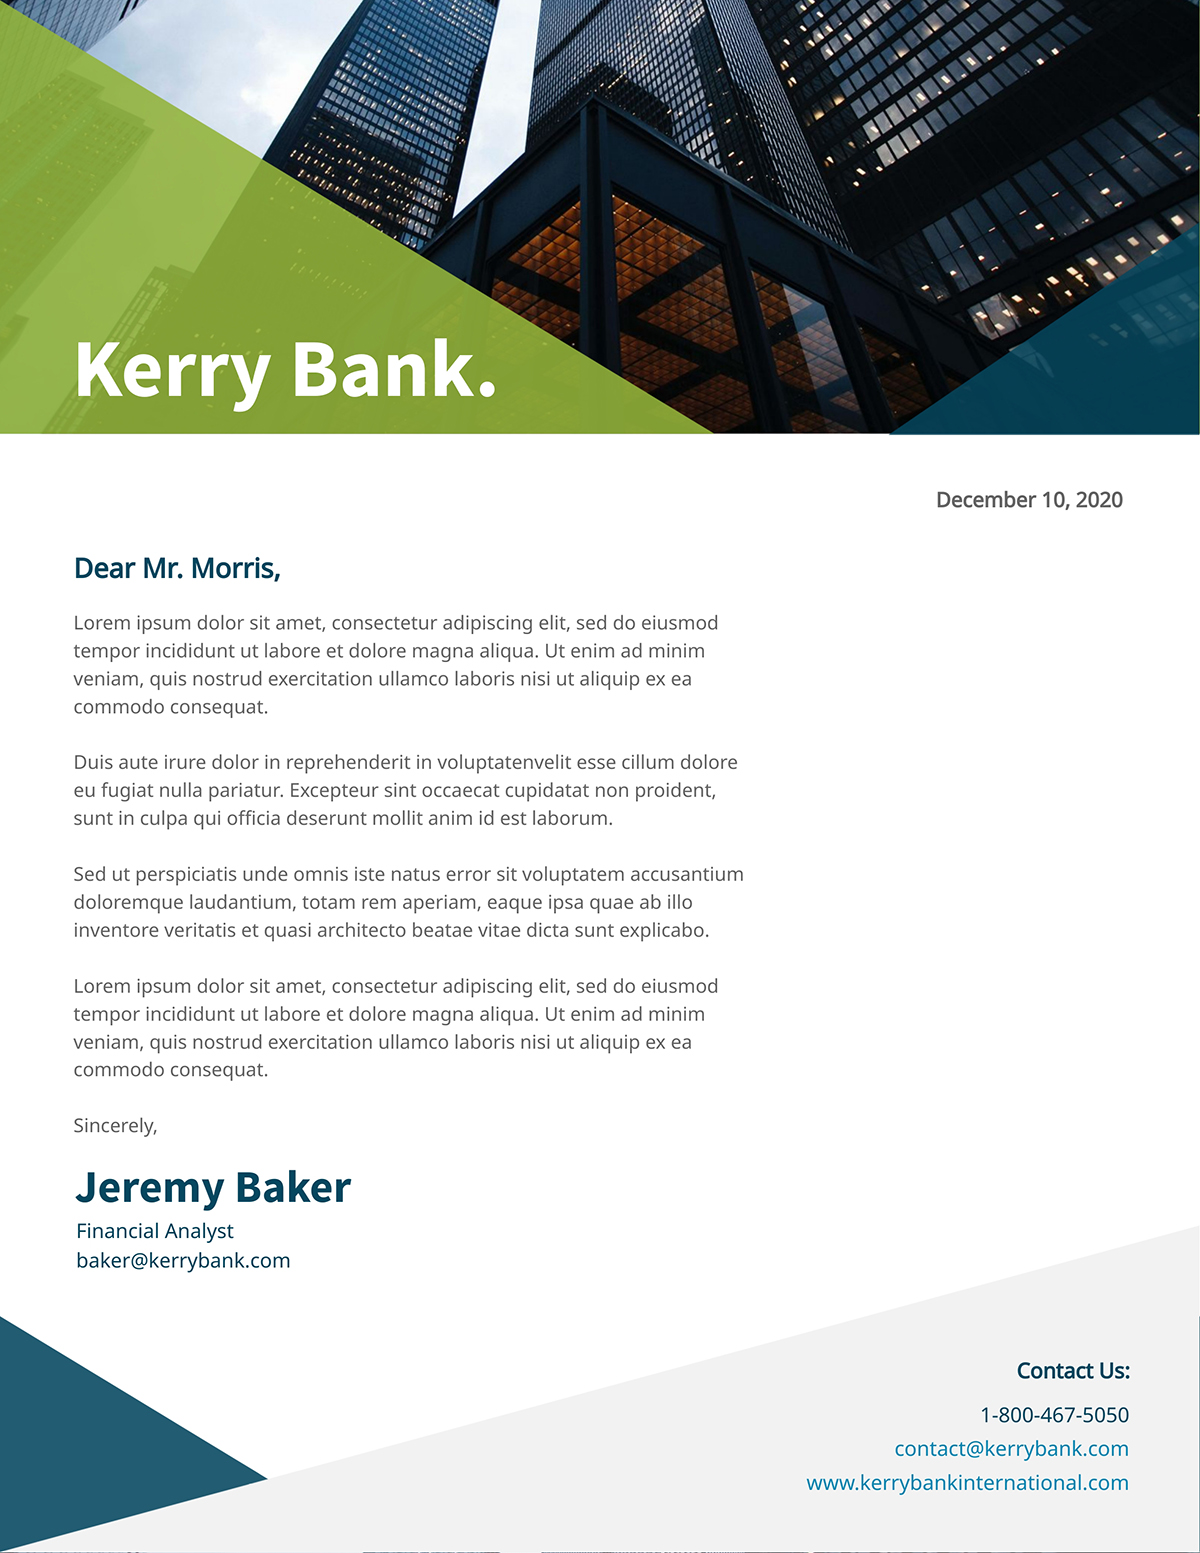 Green and blue business letter template available in Visme.